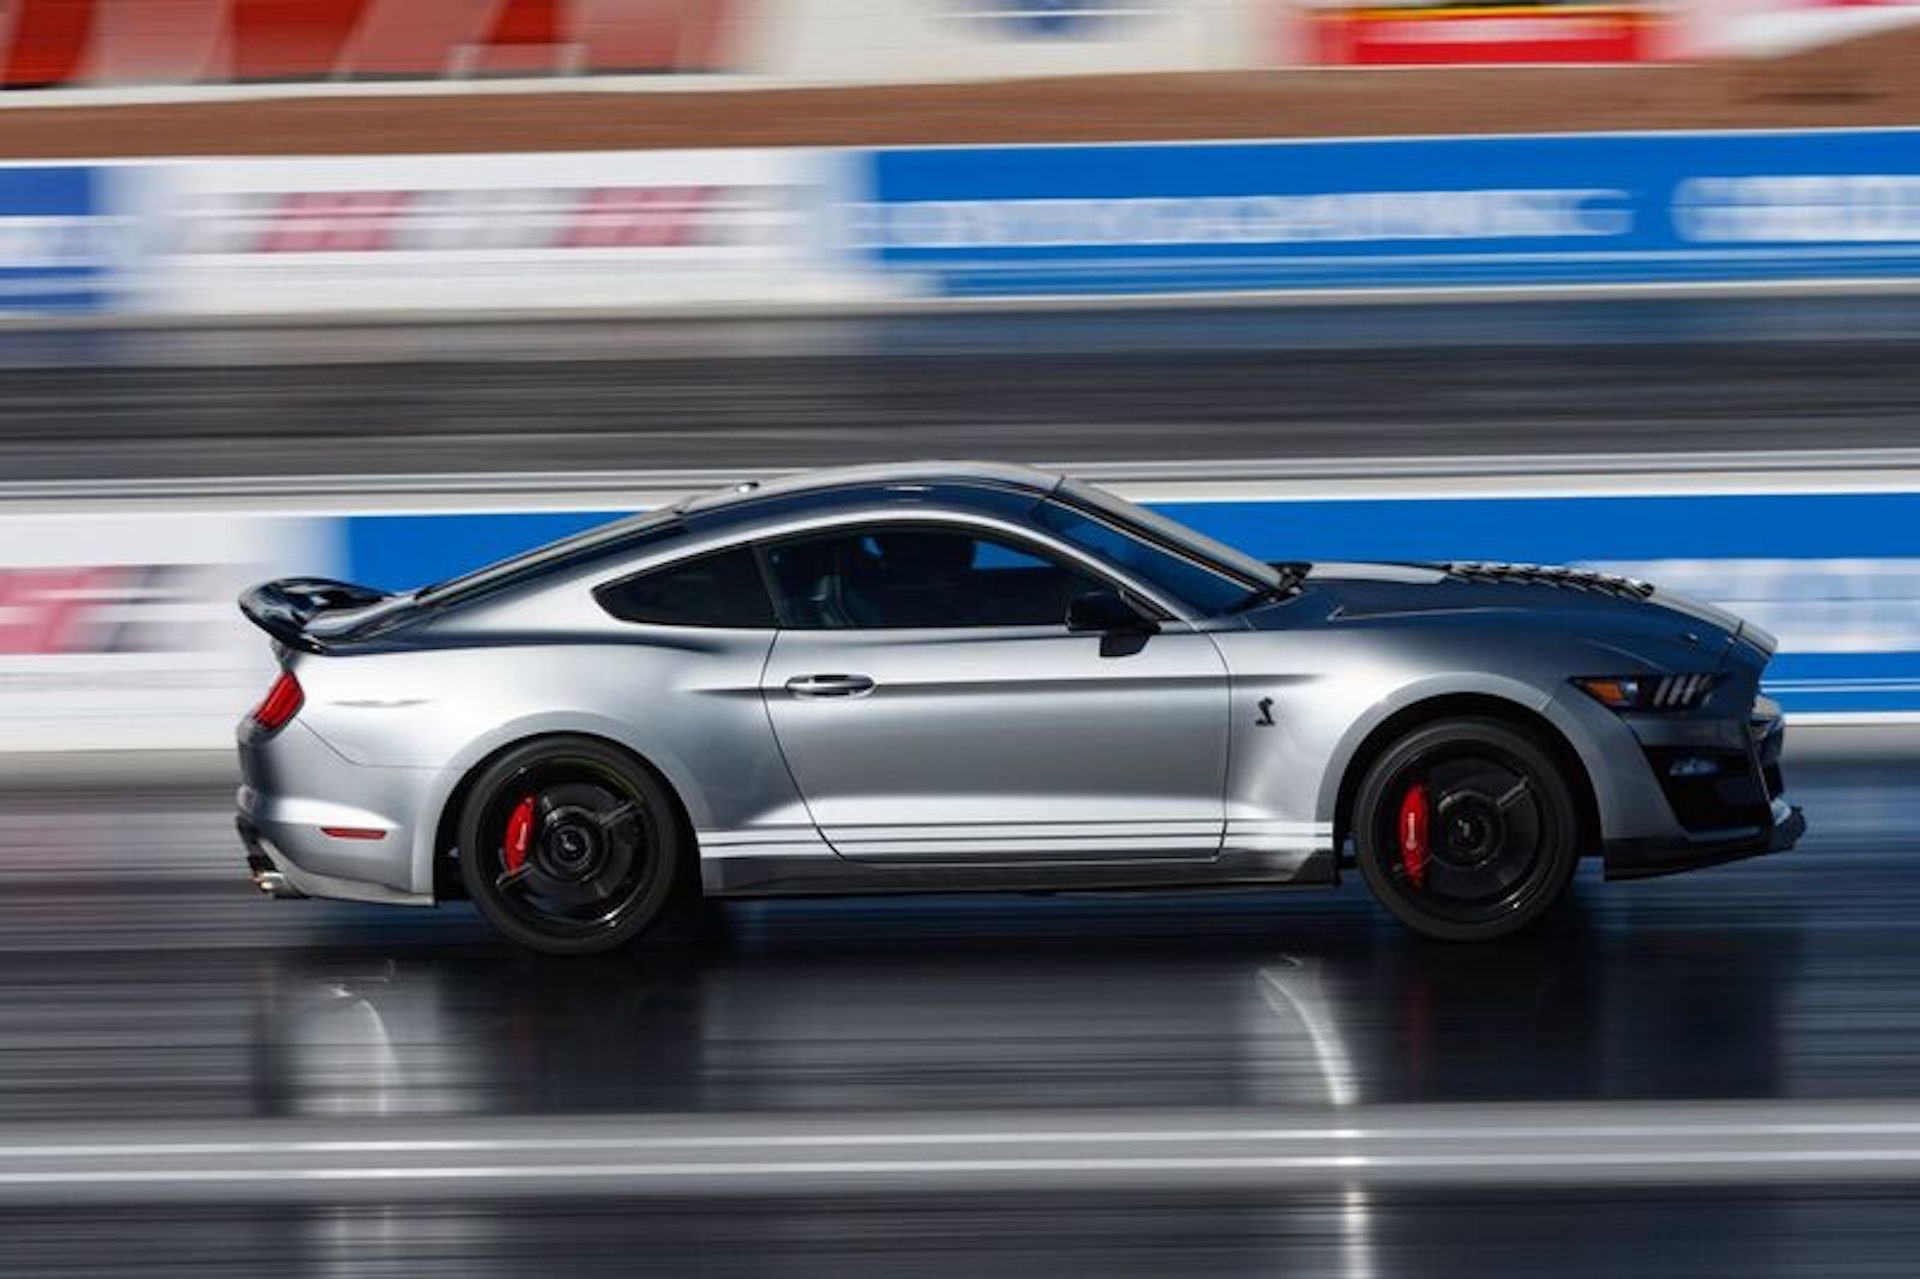 2021 The Spy Shots Ford Mustang Svt Gt 500 New Review